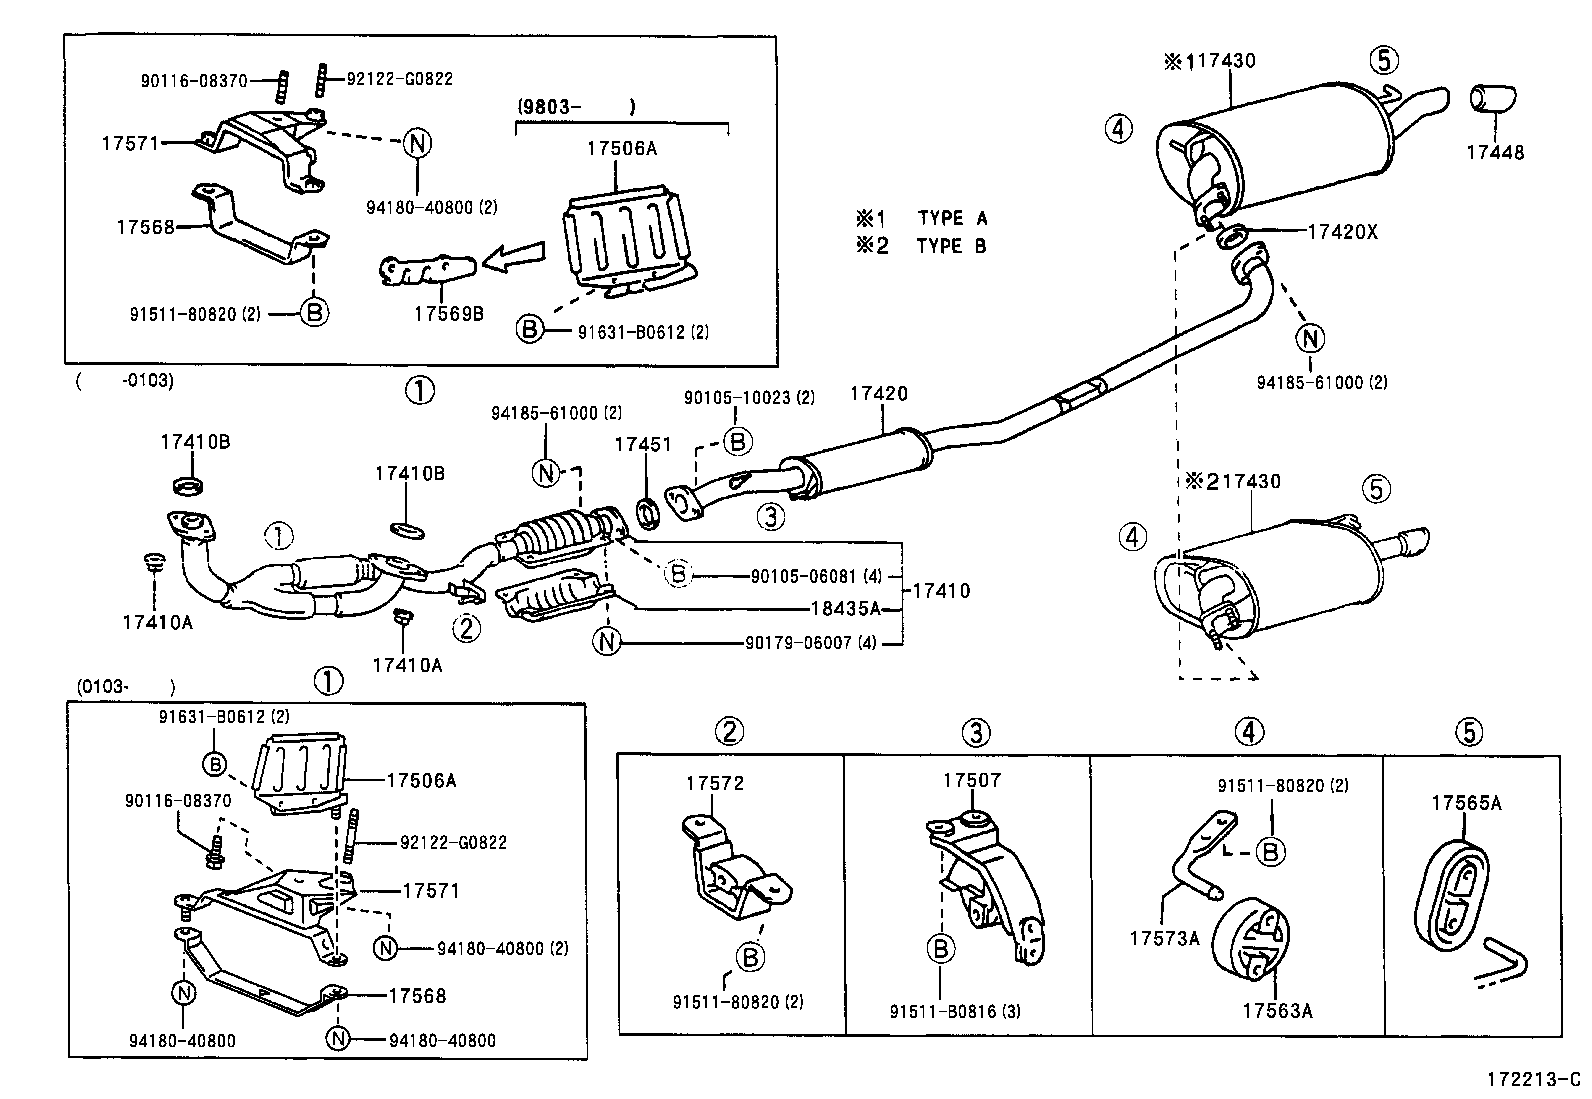 Mercedes E420 Fuse Box Diagram Mercedes Auto Fuse Box Diagram